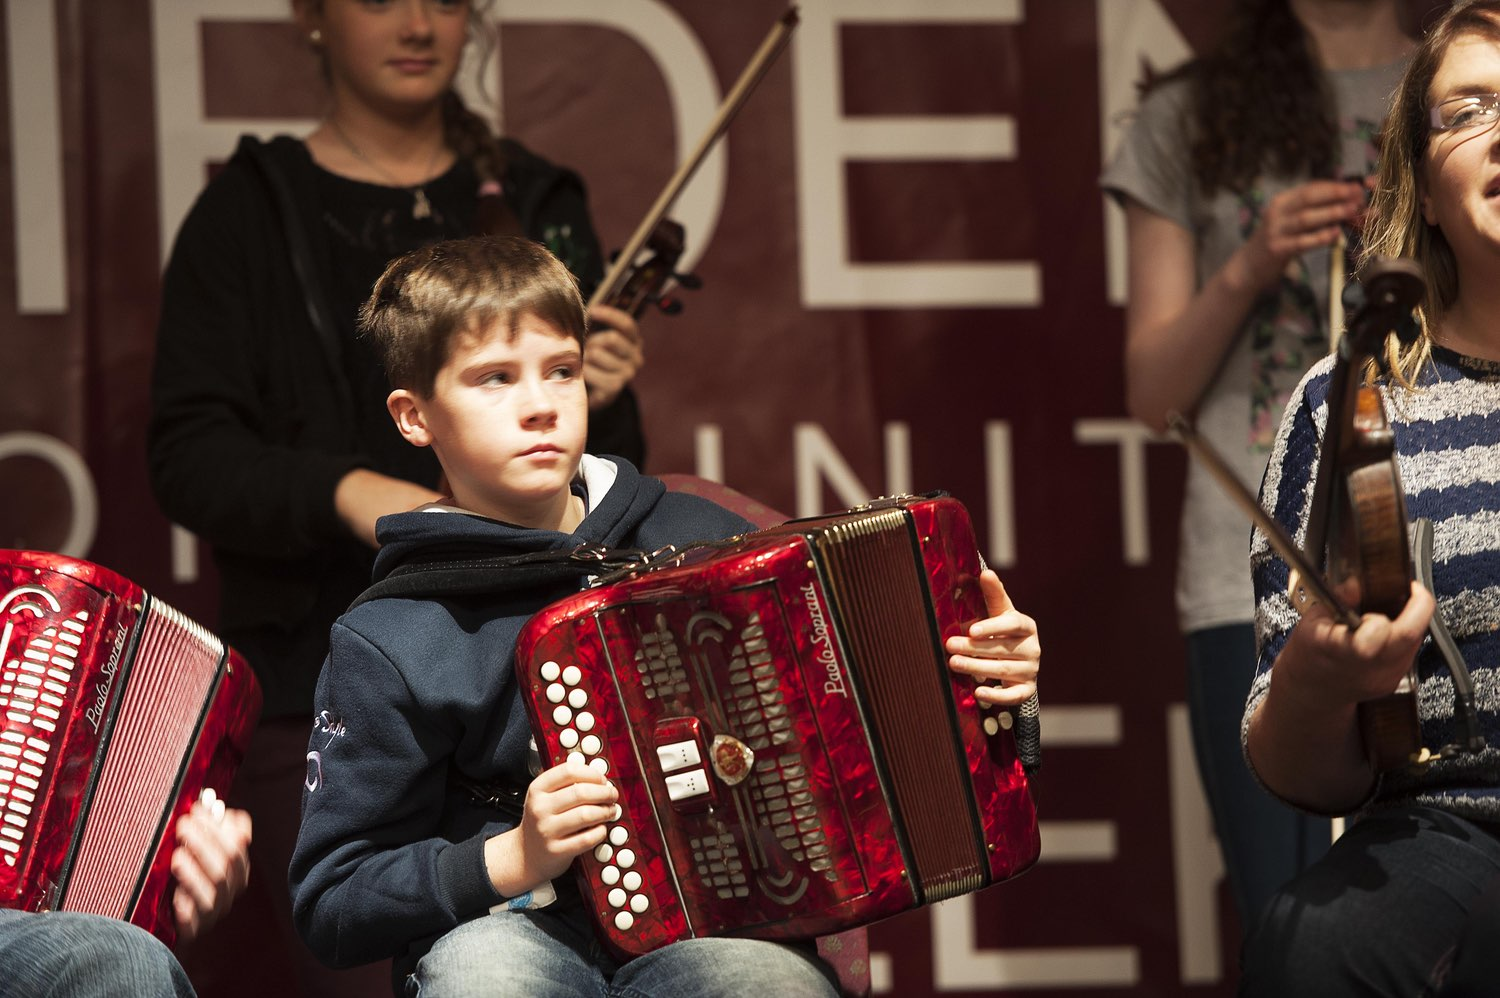 Students from Clifden Community School put on a recital, playing various instruments